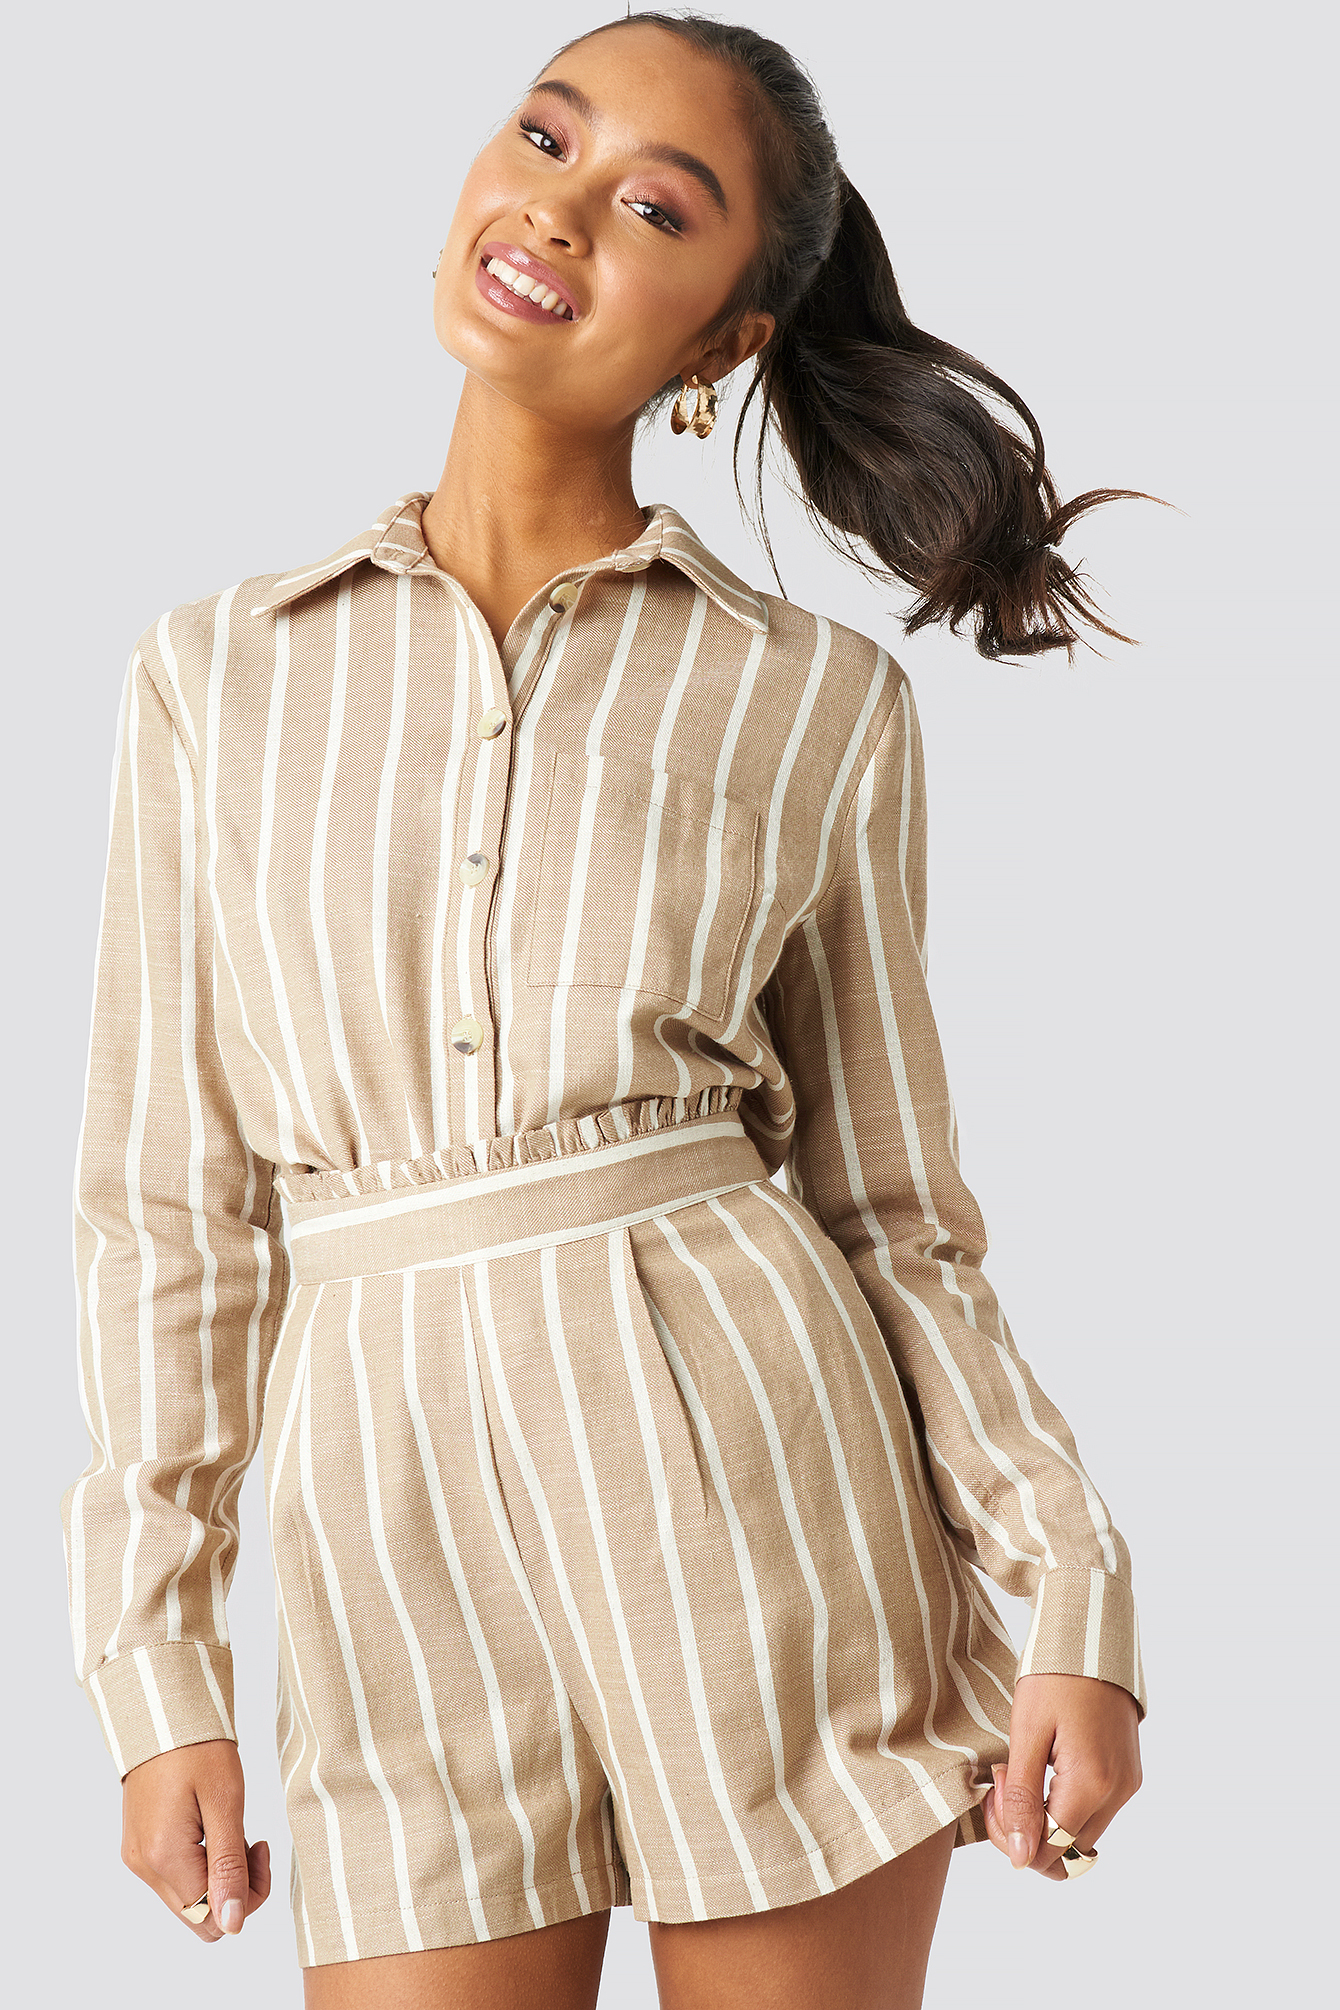 Milla Striped Shirt NA-KD.COM